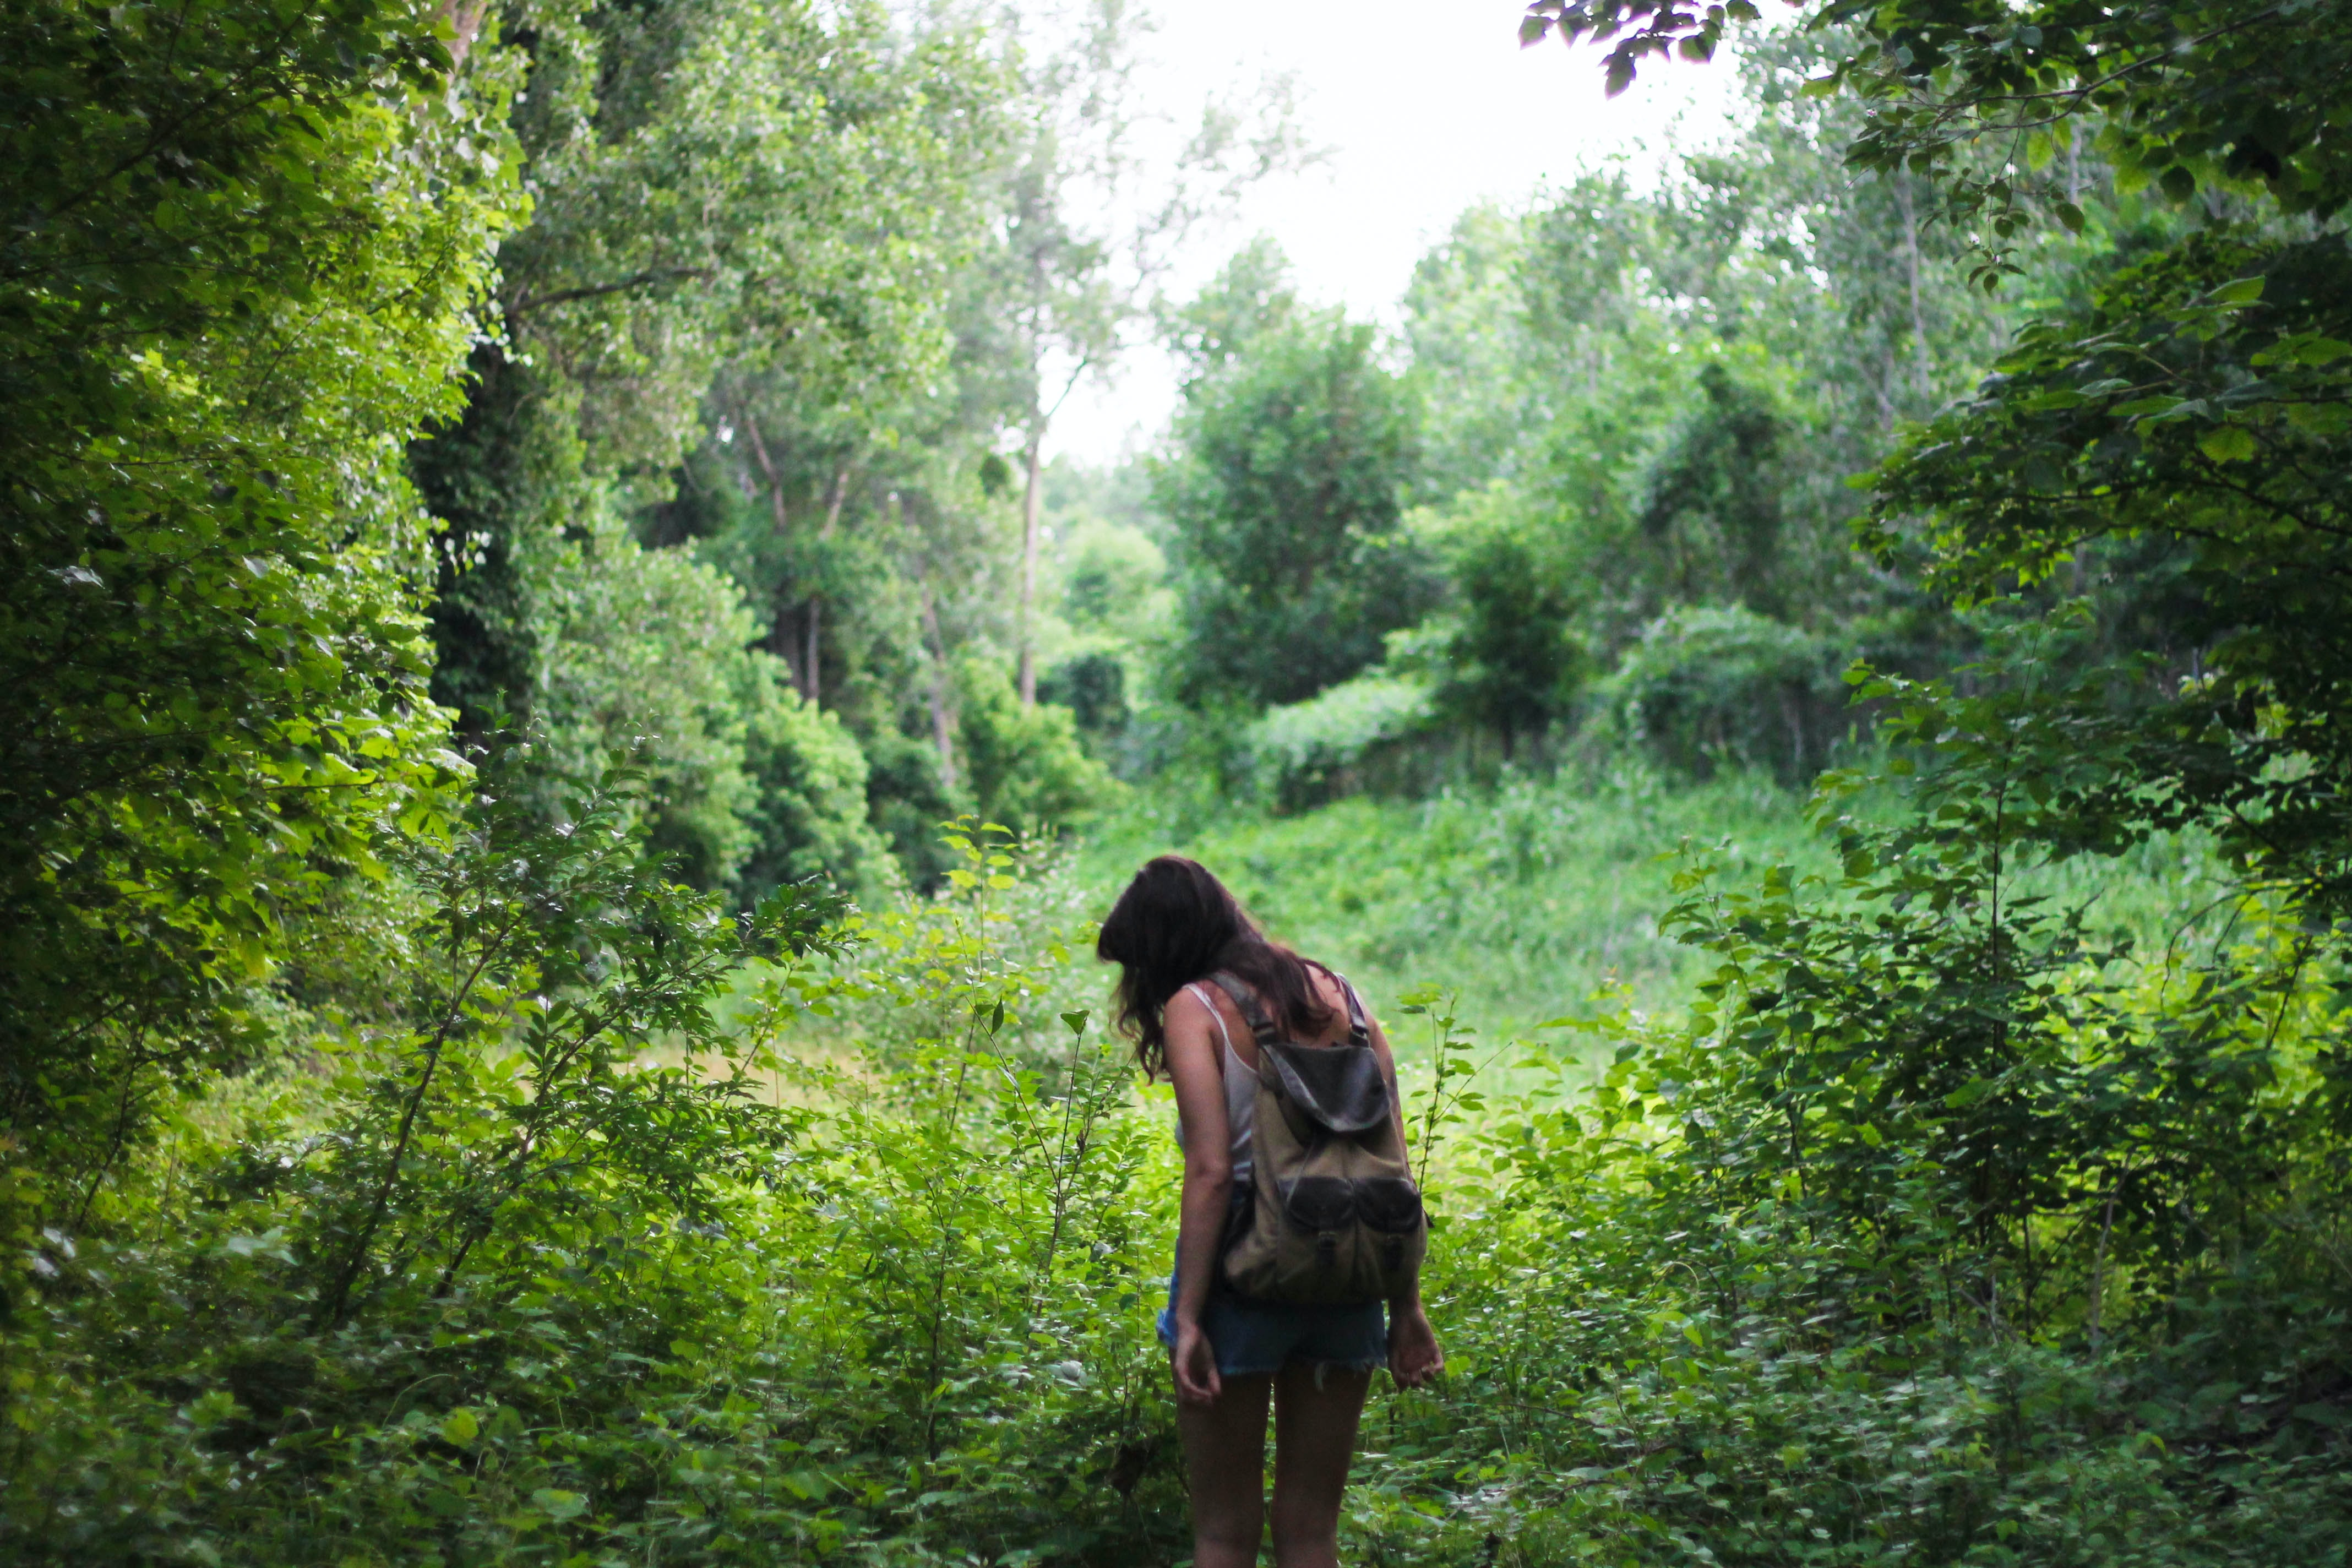 woman with backpack near green trees